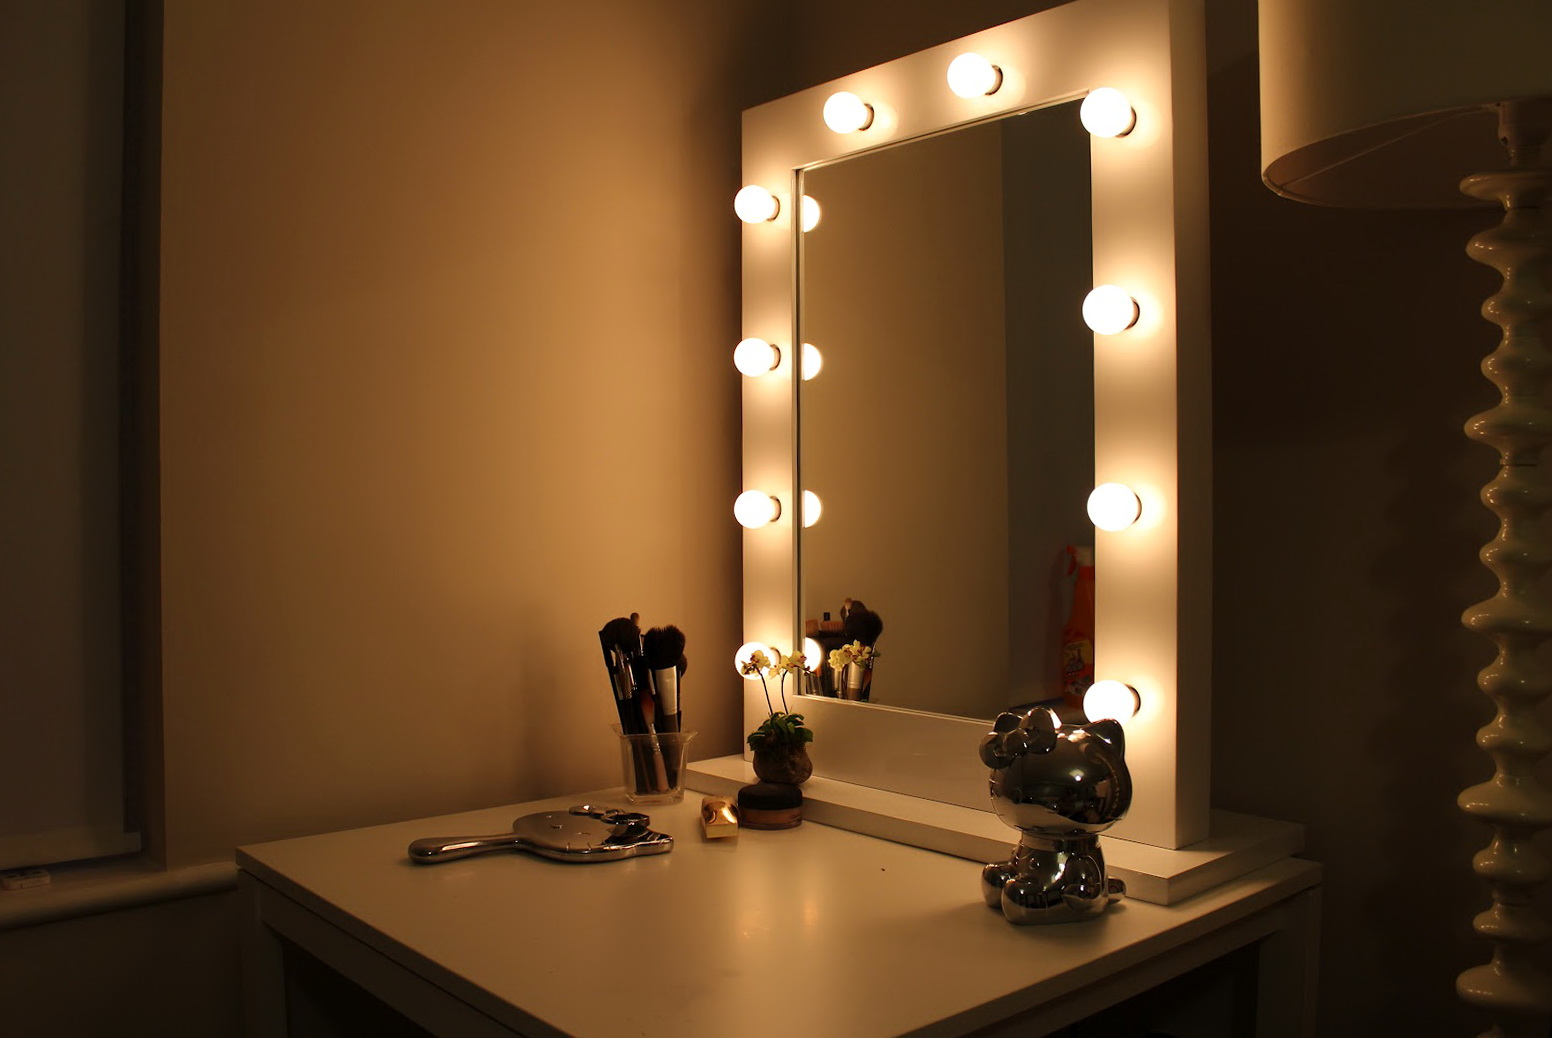 vanity girl broadway lighted makeup mirror home design ideas. Black Bedroom Furniture Sets. Home Design Ideas